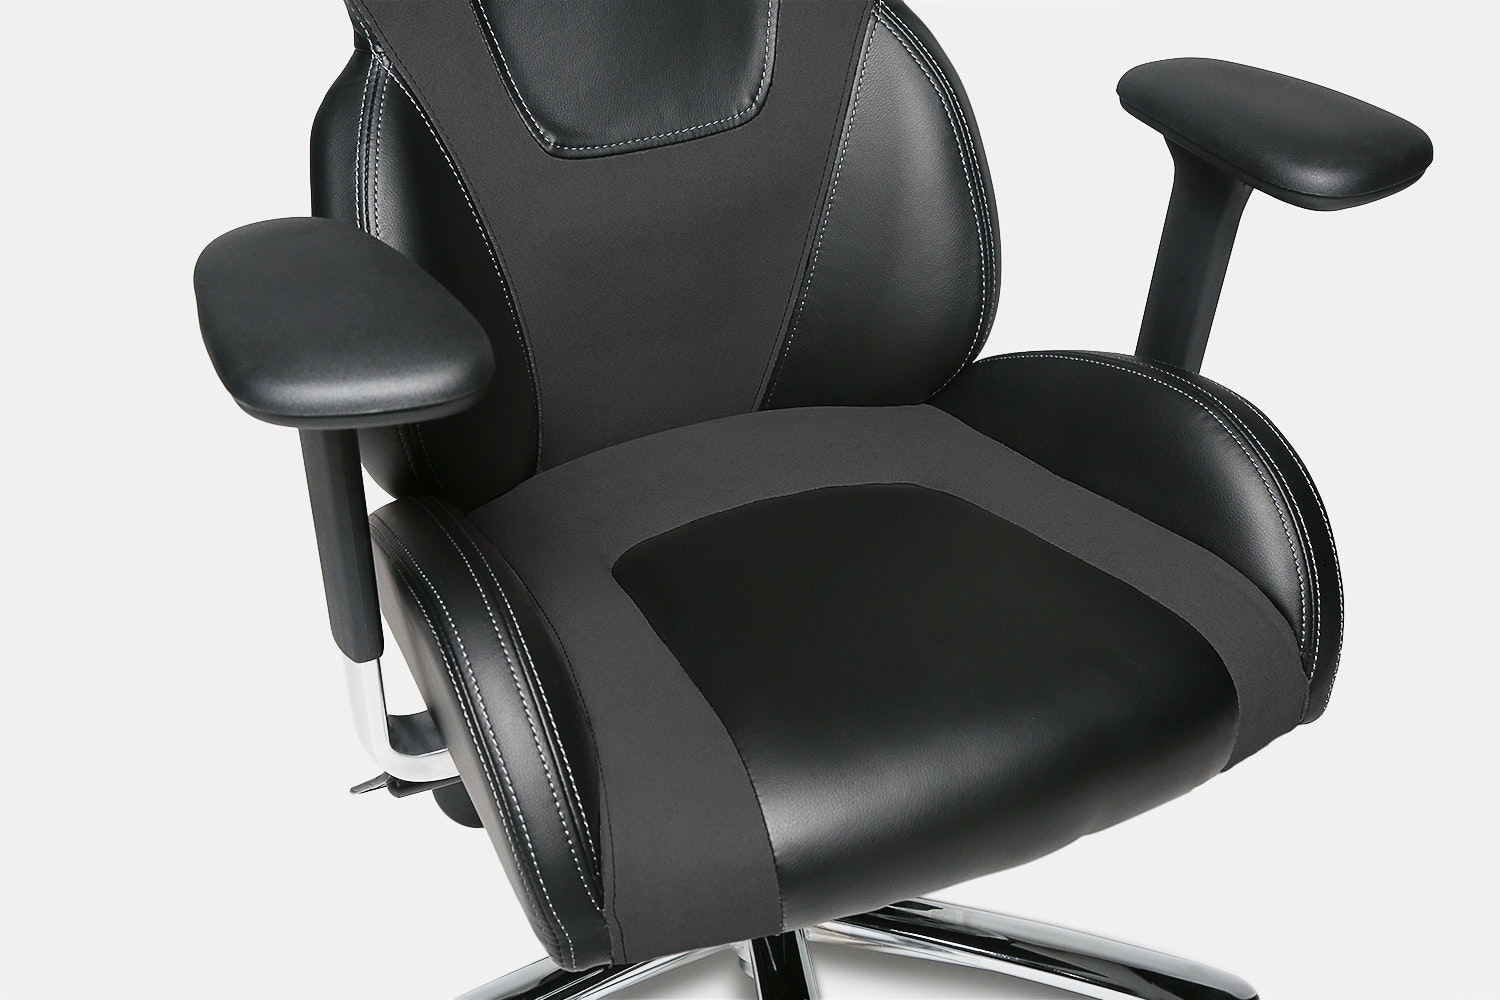 E Blue Mazer Gaming Chair (Special Edition)